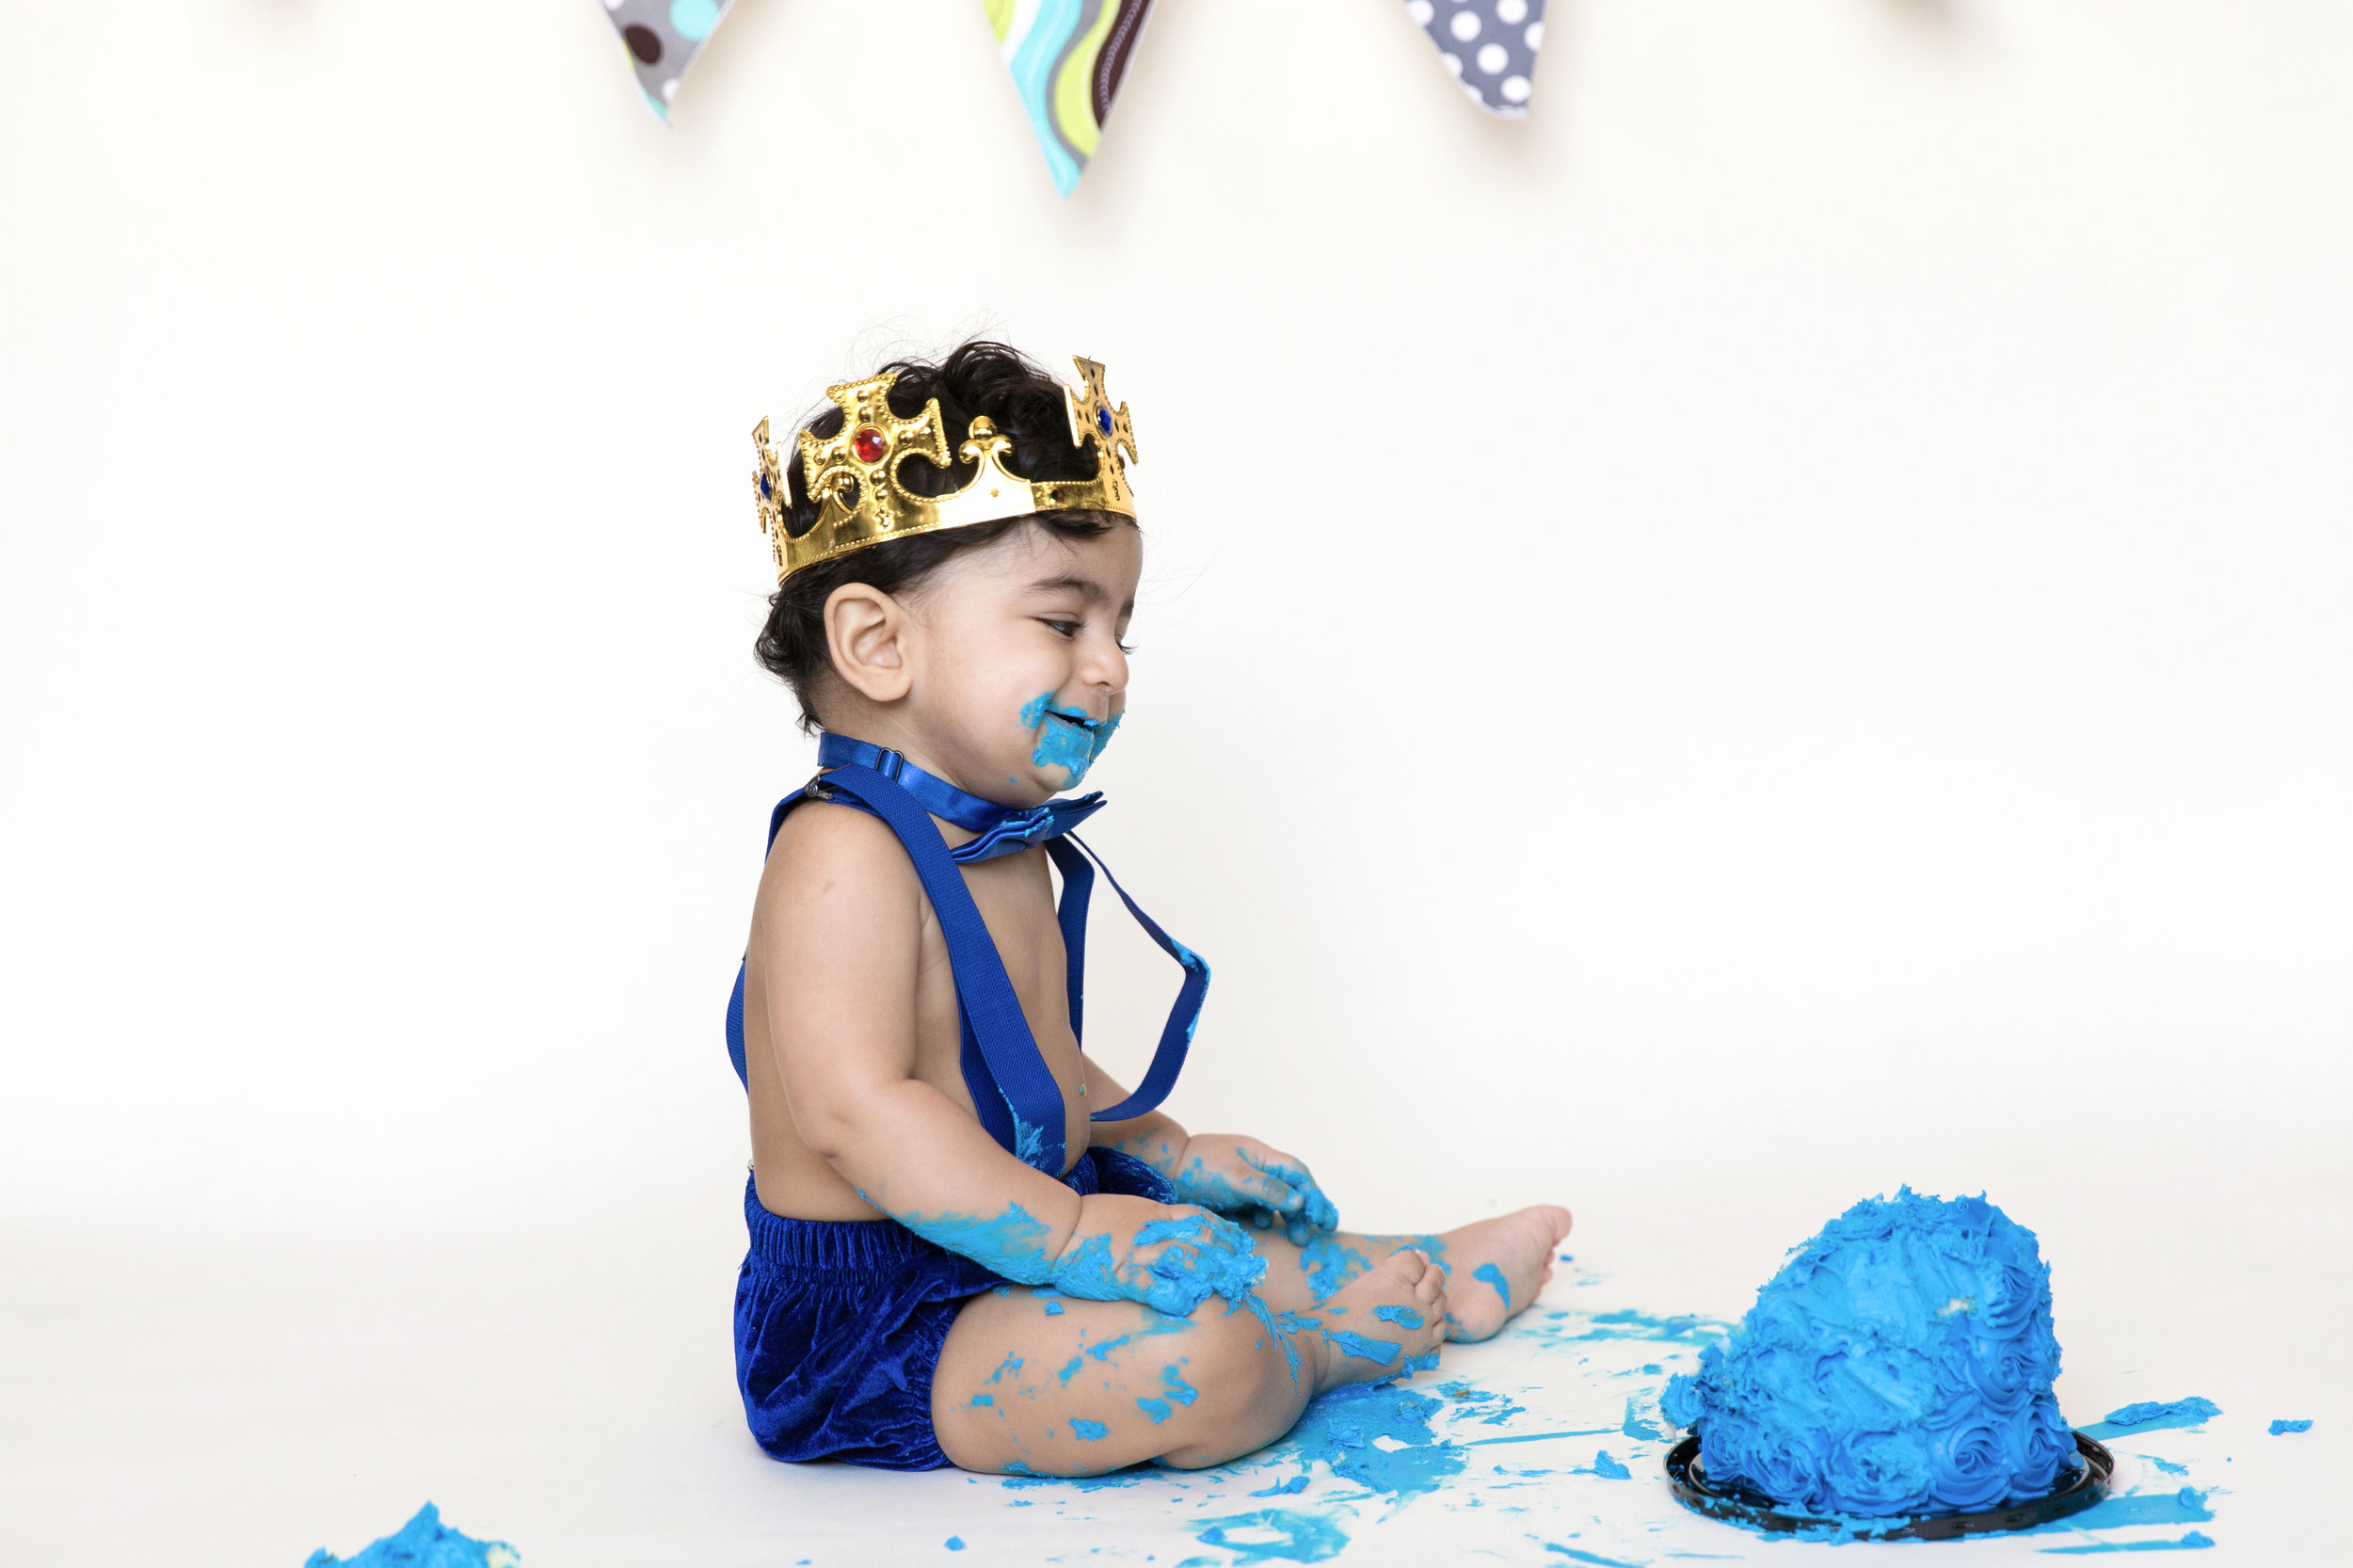 Birthday boy is covered in his cake smiling. Cakesmash photography. Milashka Photography